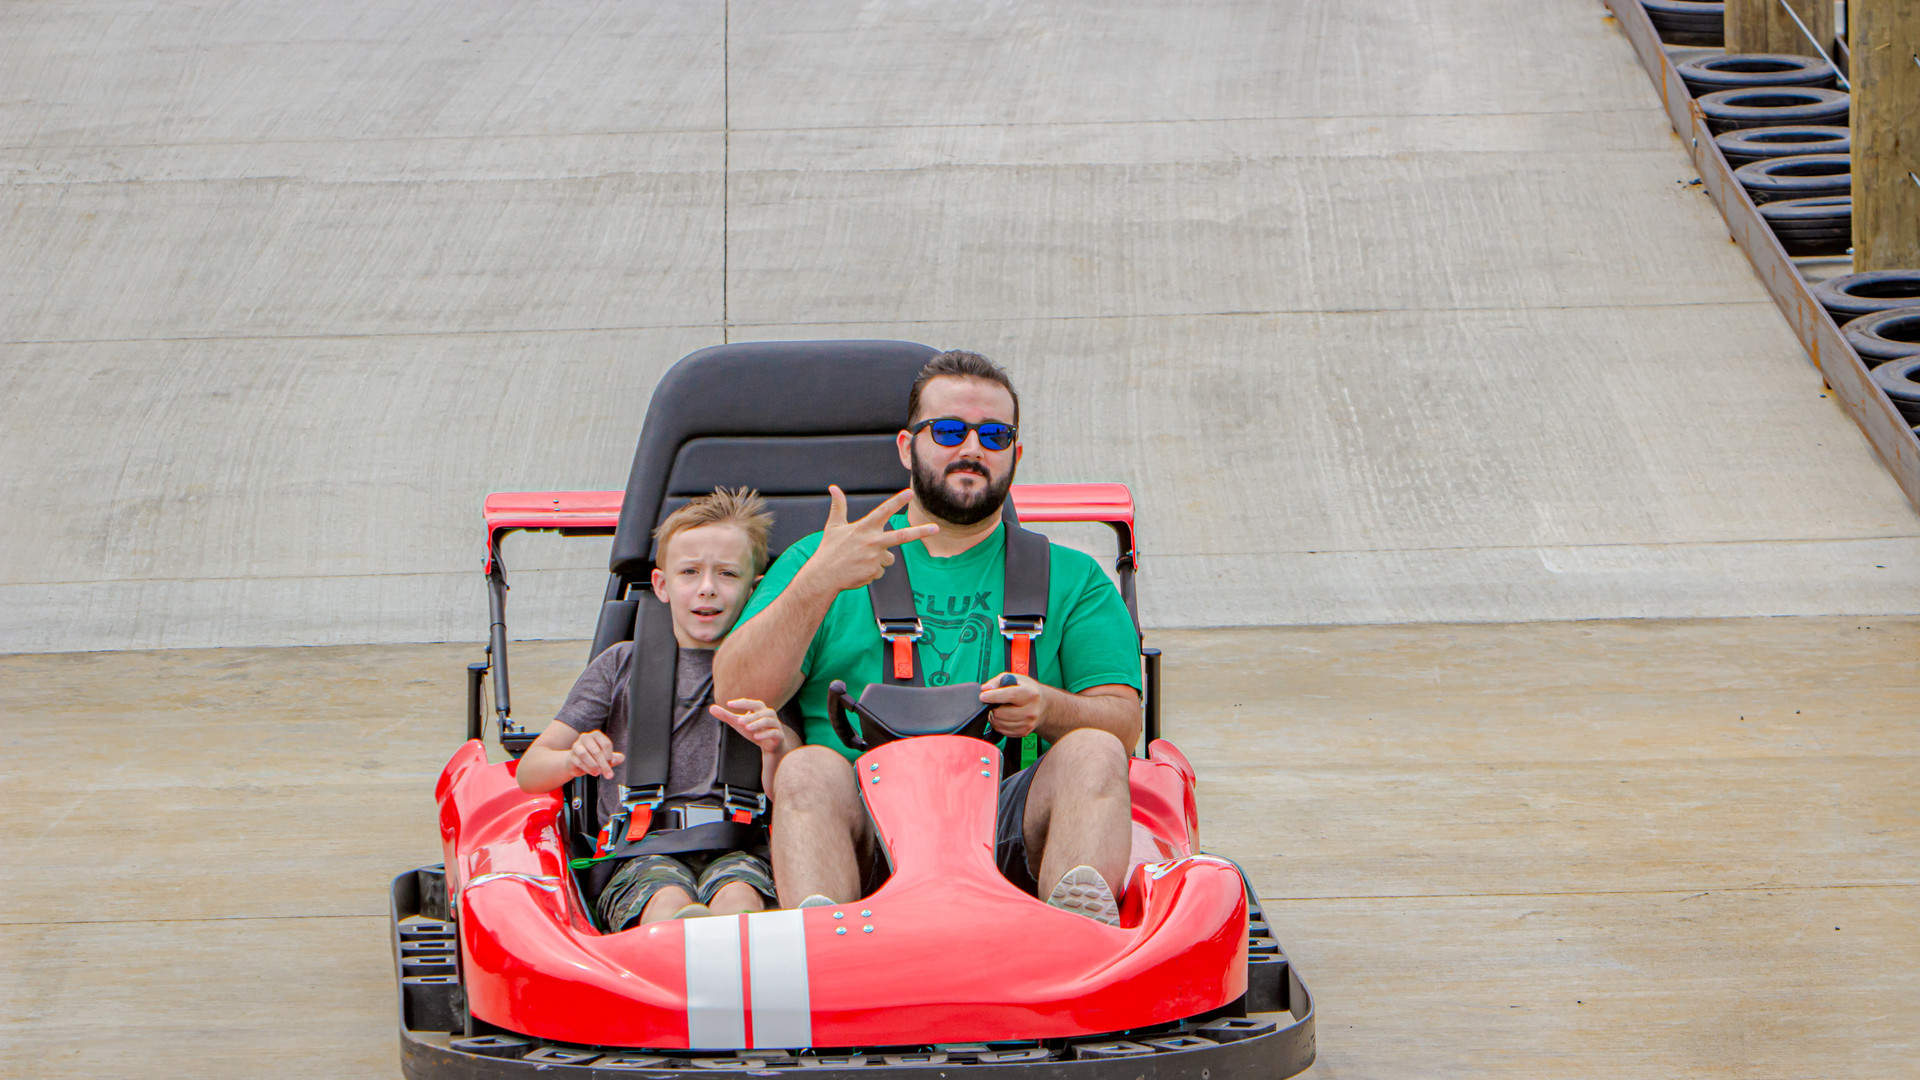 Thunder Speedway - Dad & Son Racing